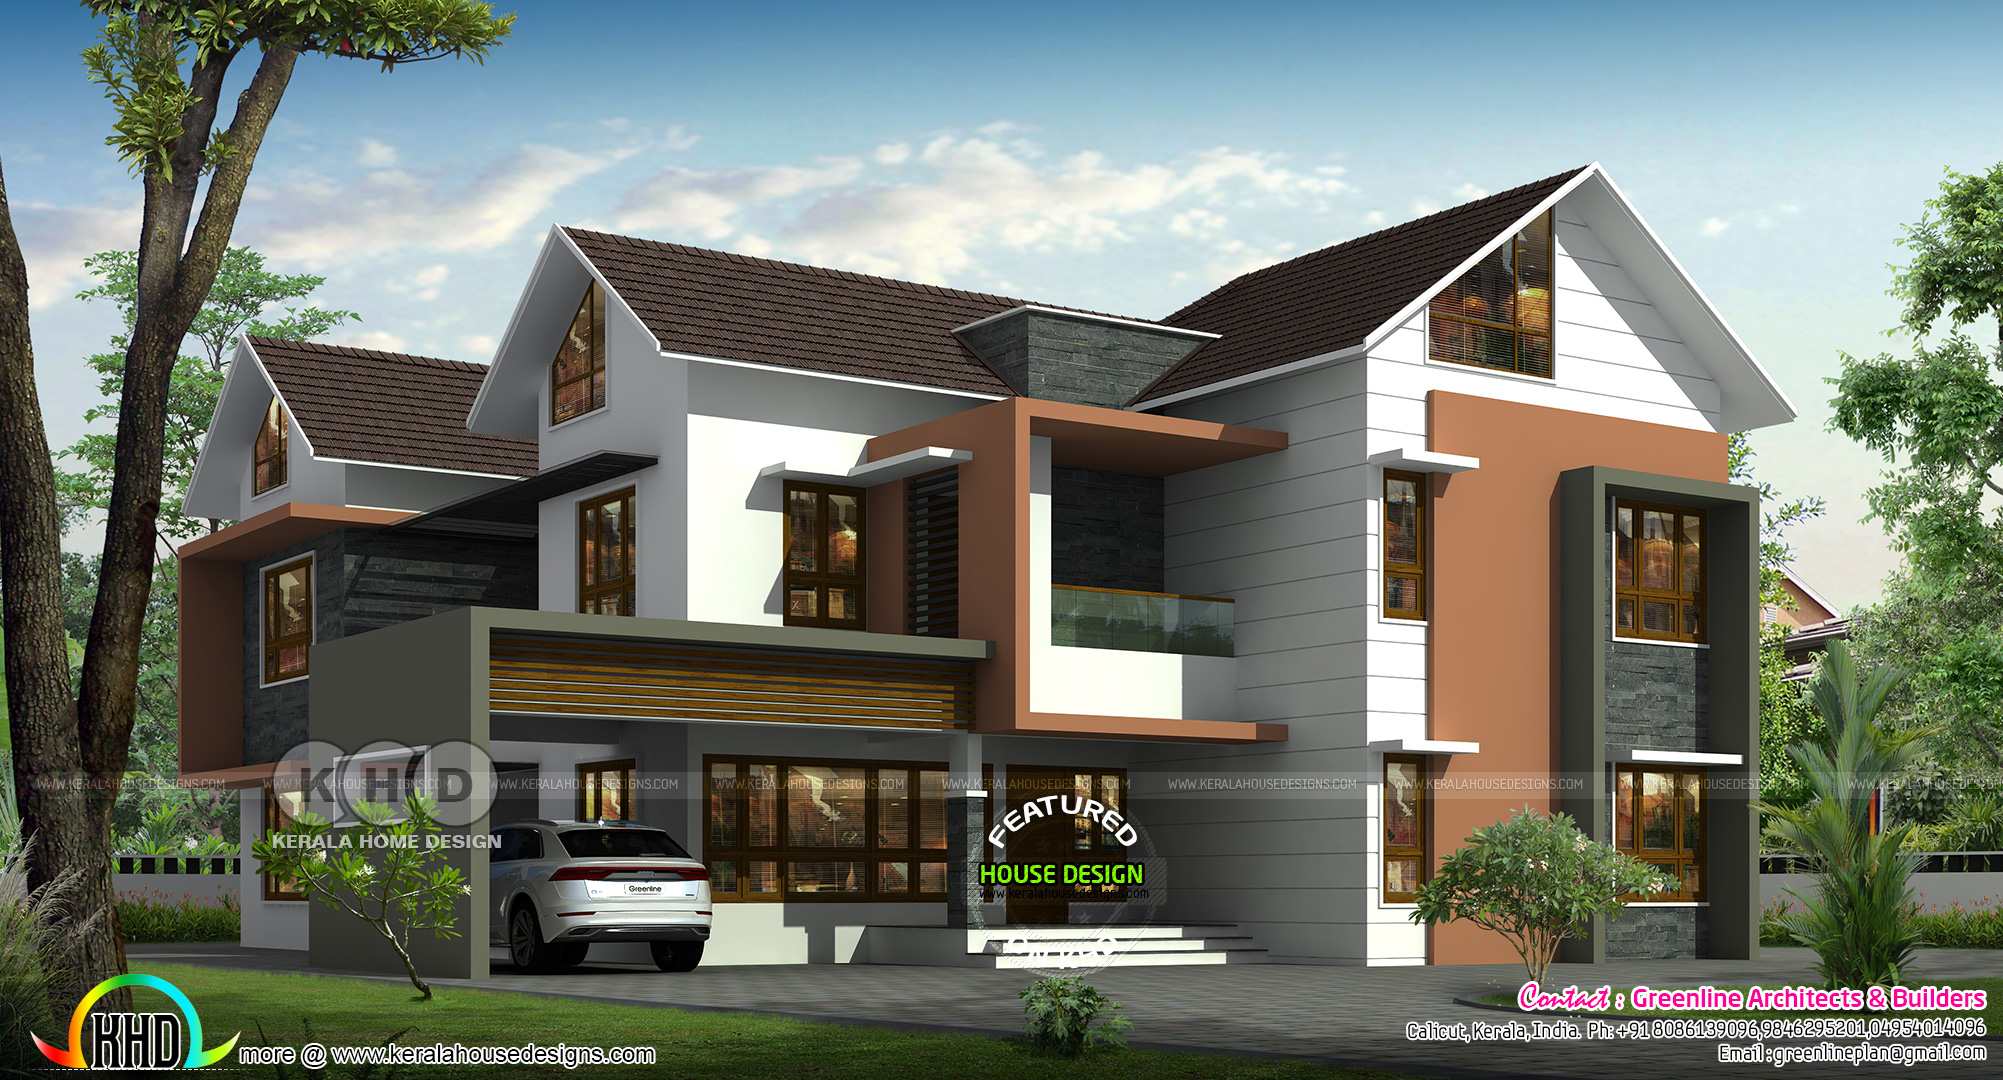 Luxurious 5 Bedroom Mixed Roof House Design Kerala Home Design And Floor Plans 8000 Houses